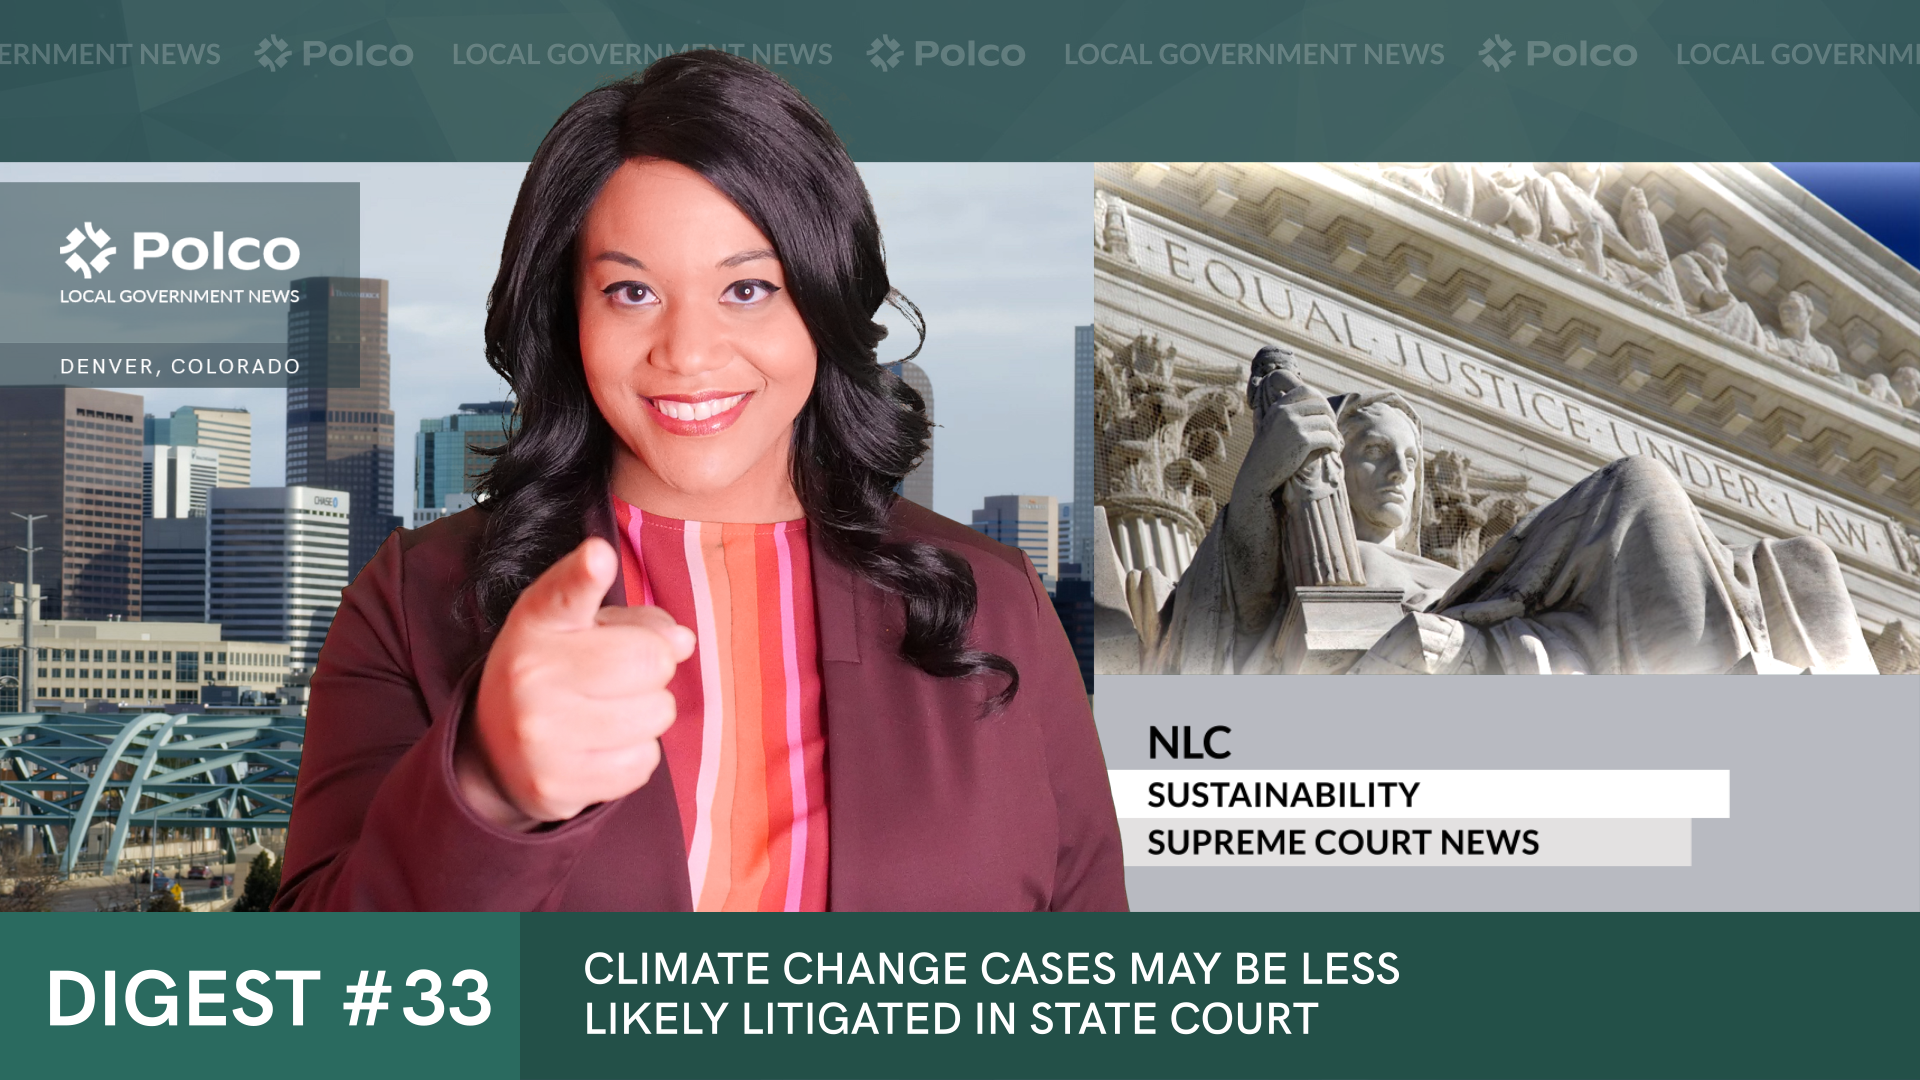 Climate Change Cases May Be Less Likely Litigated in State Court